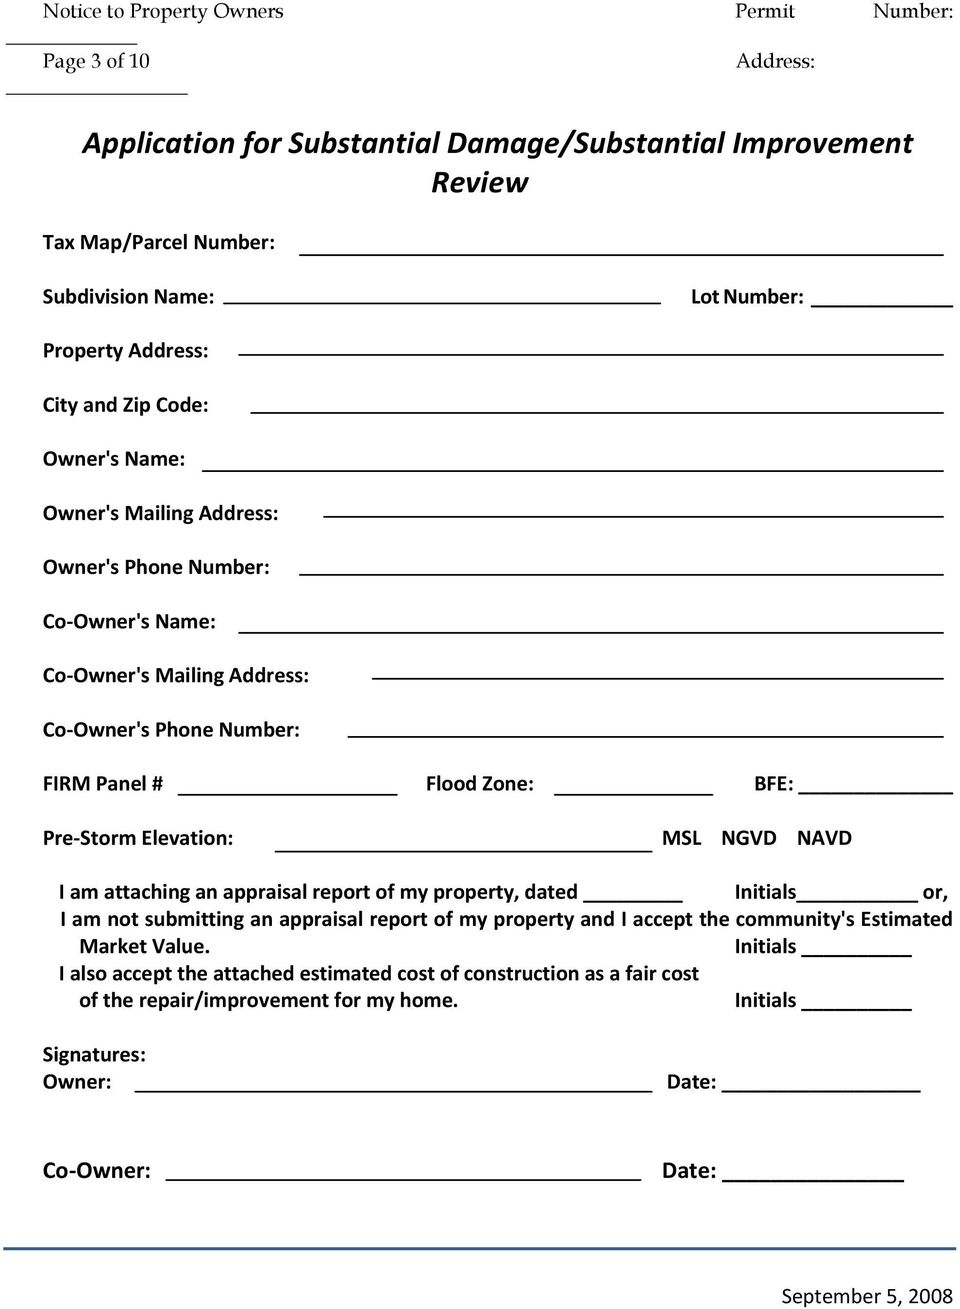 Elevation: MSL NGVD NAVD I am attaching an appraisal report of my property, dated Initials or, I am not submitting an appraisal report of my property and I accept the community's